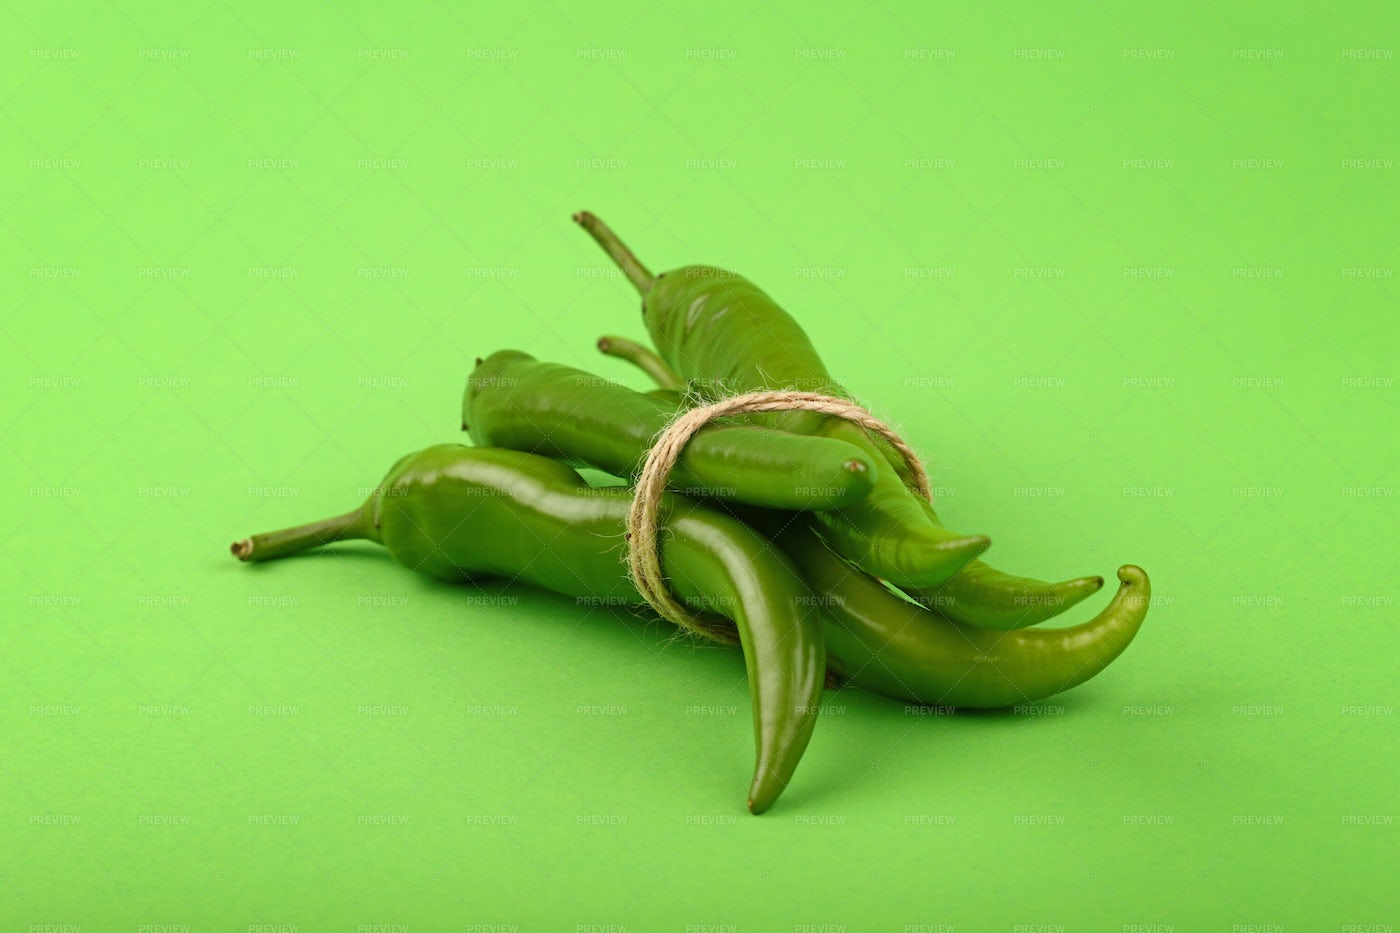 Bunch Of Jalapeno Chili Peppers: Stock Photos